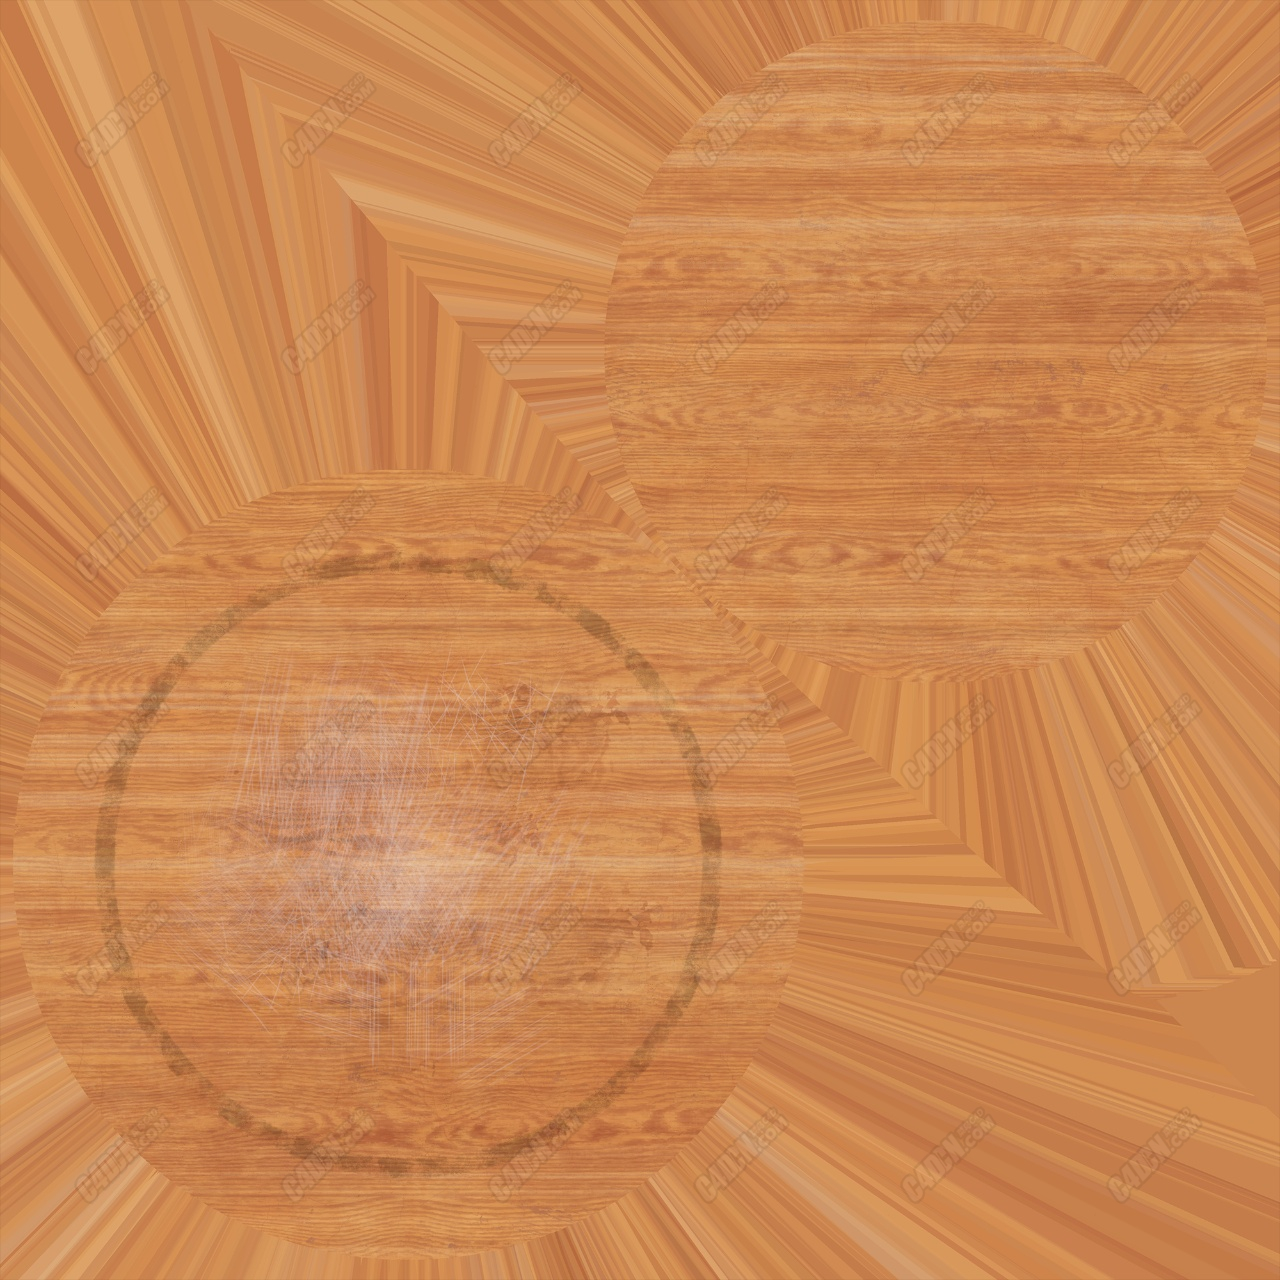 AMxxx_023_cutting_board_Diffuse.png